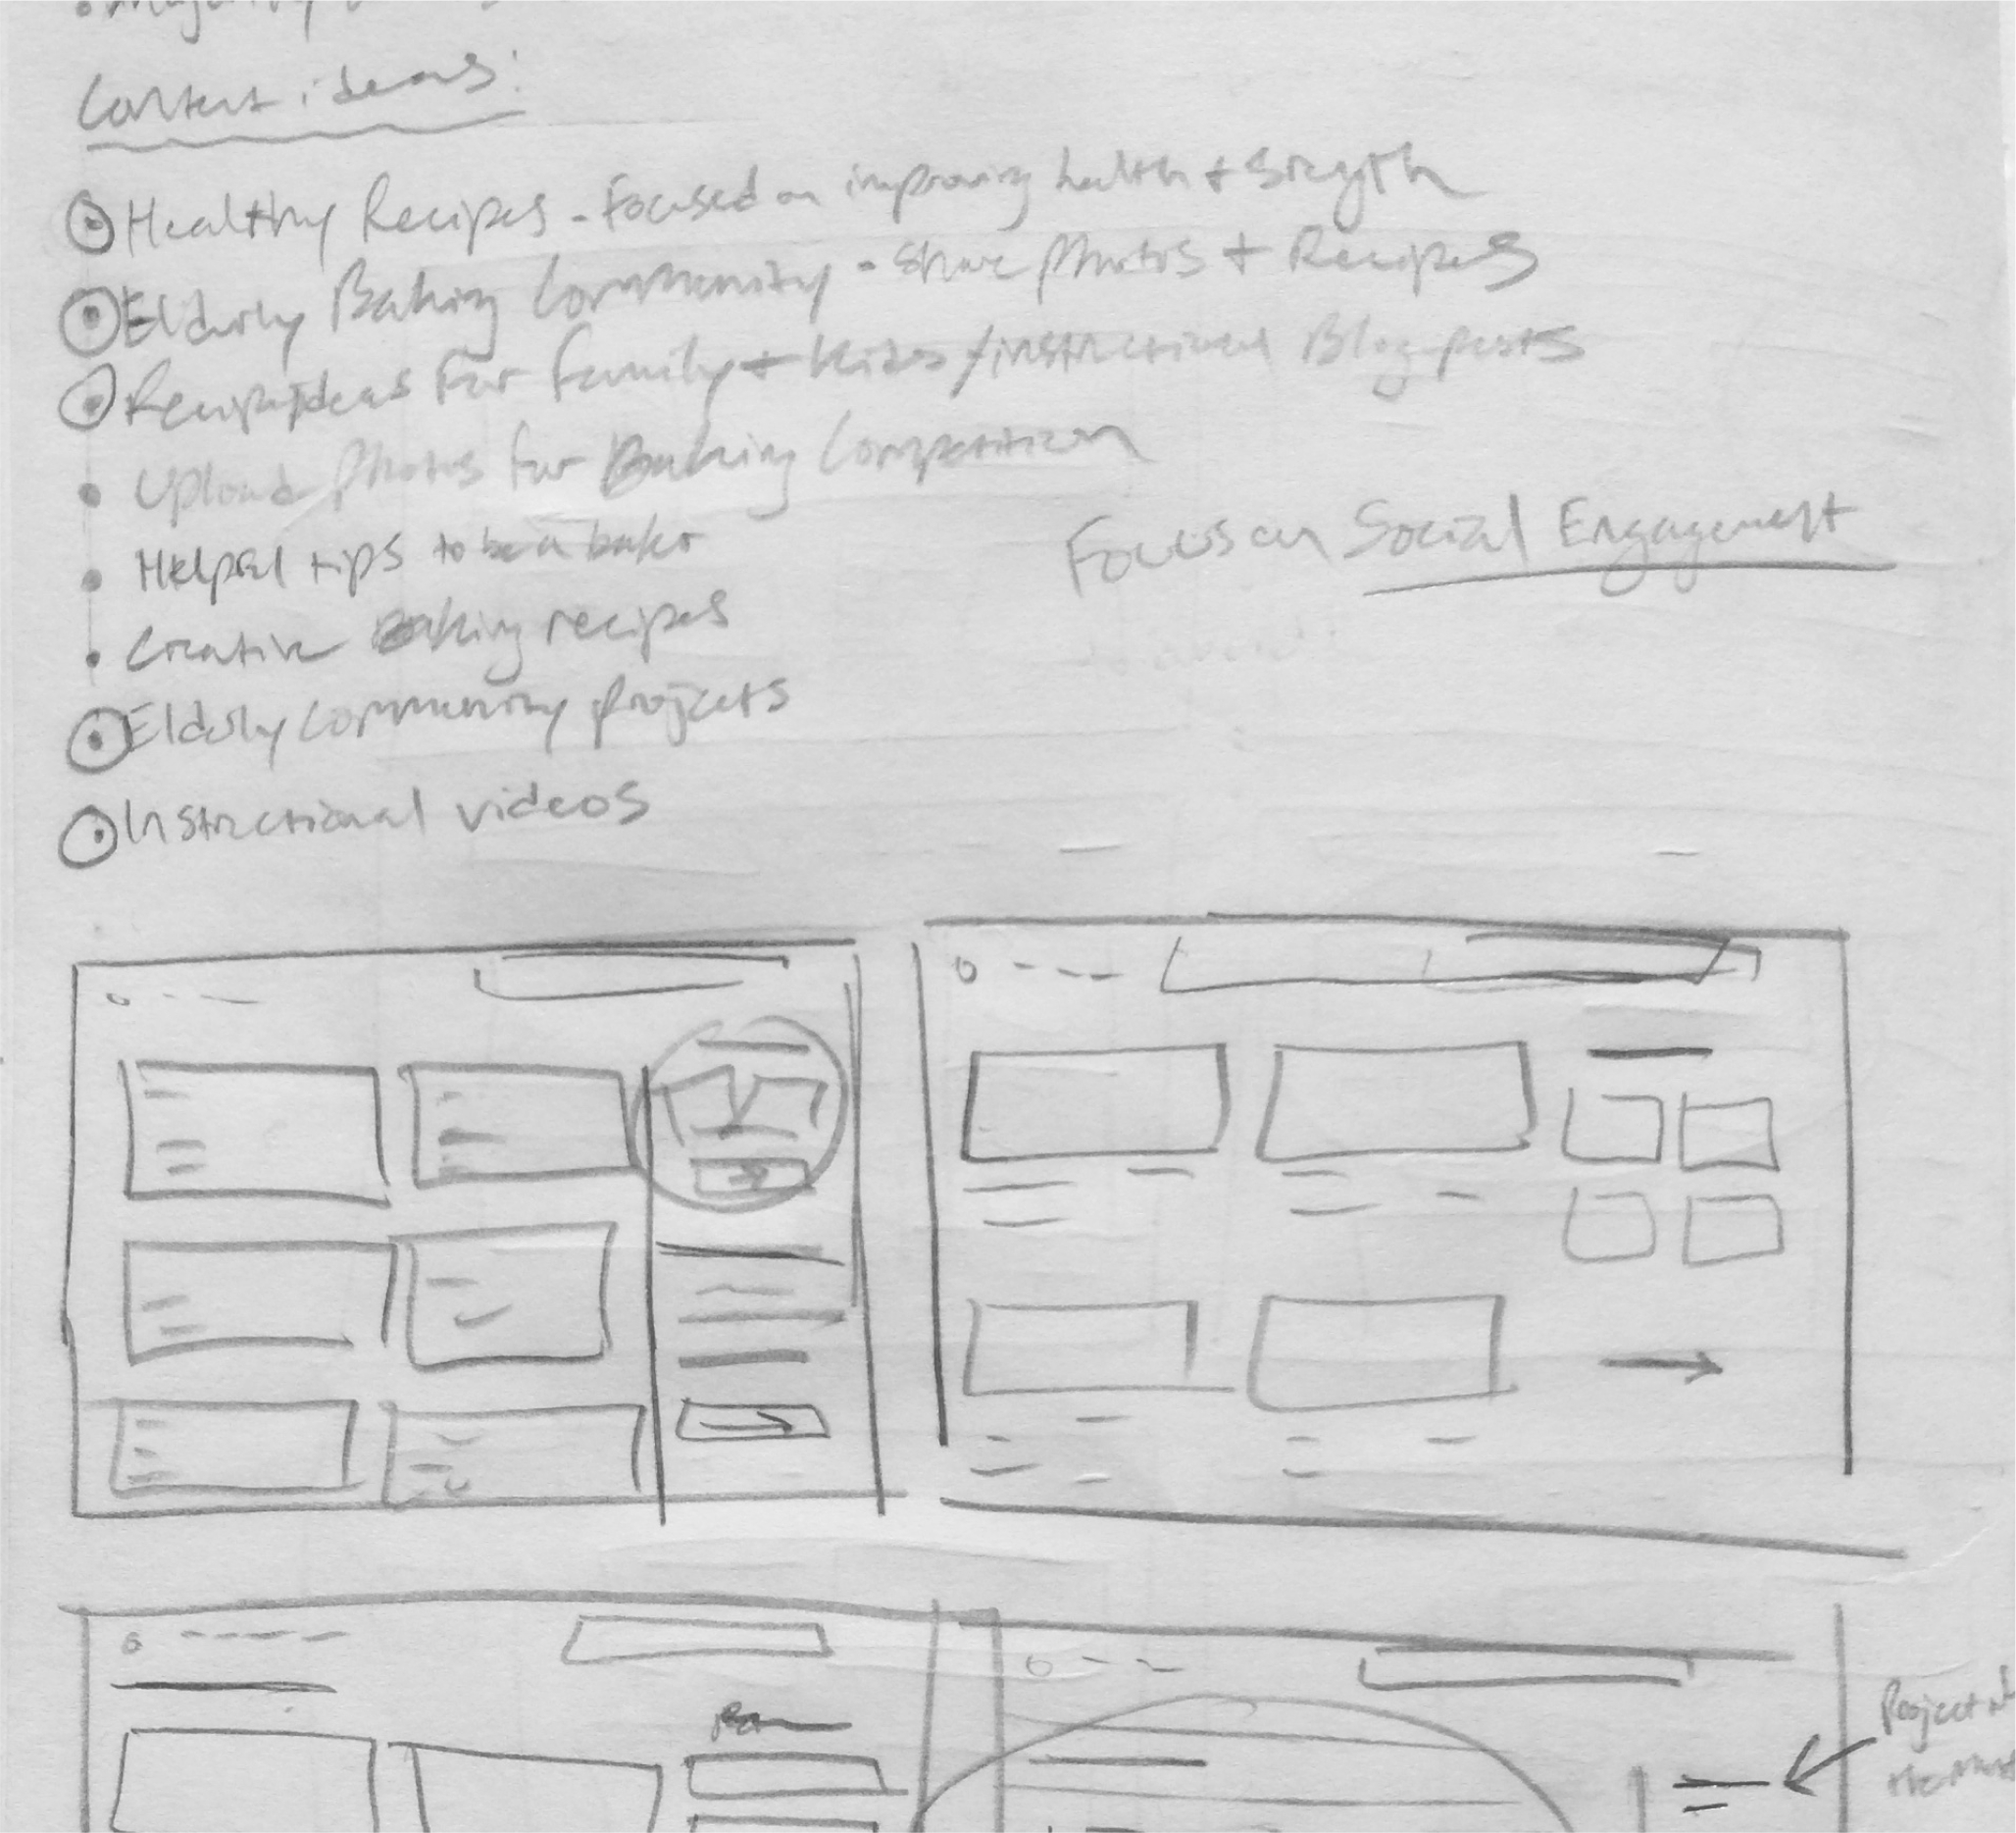 Iteration 2 sketches with notes on users.